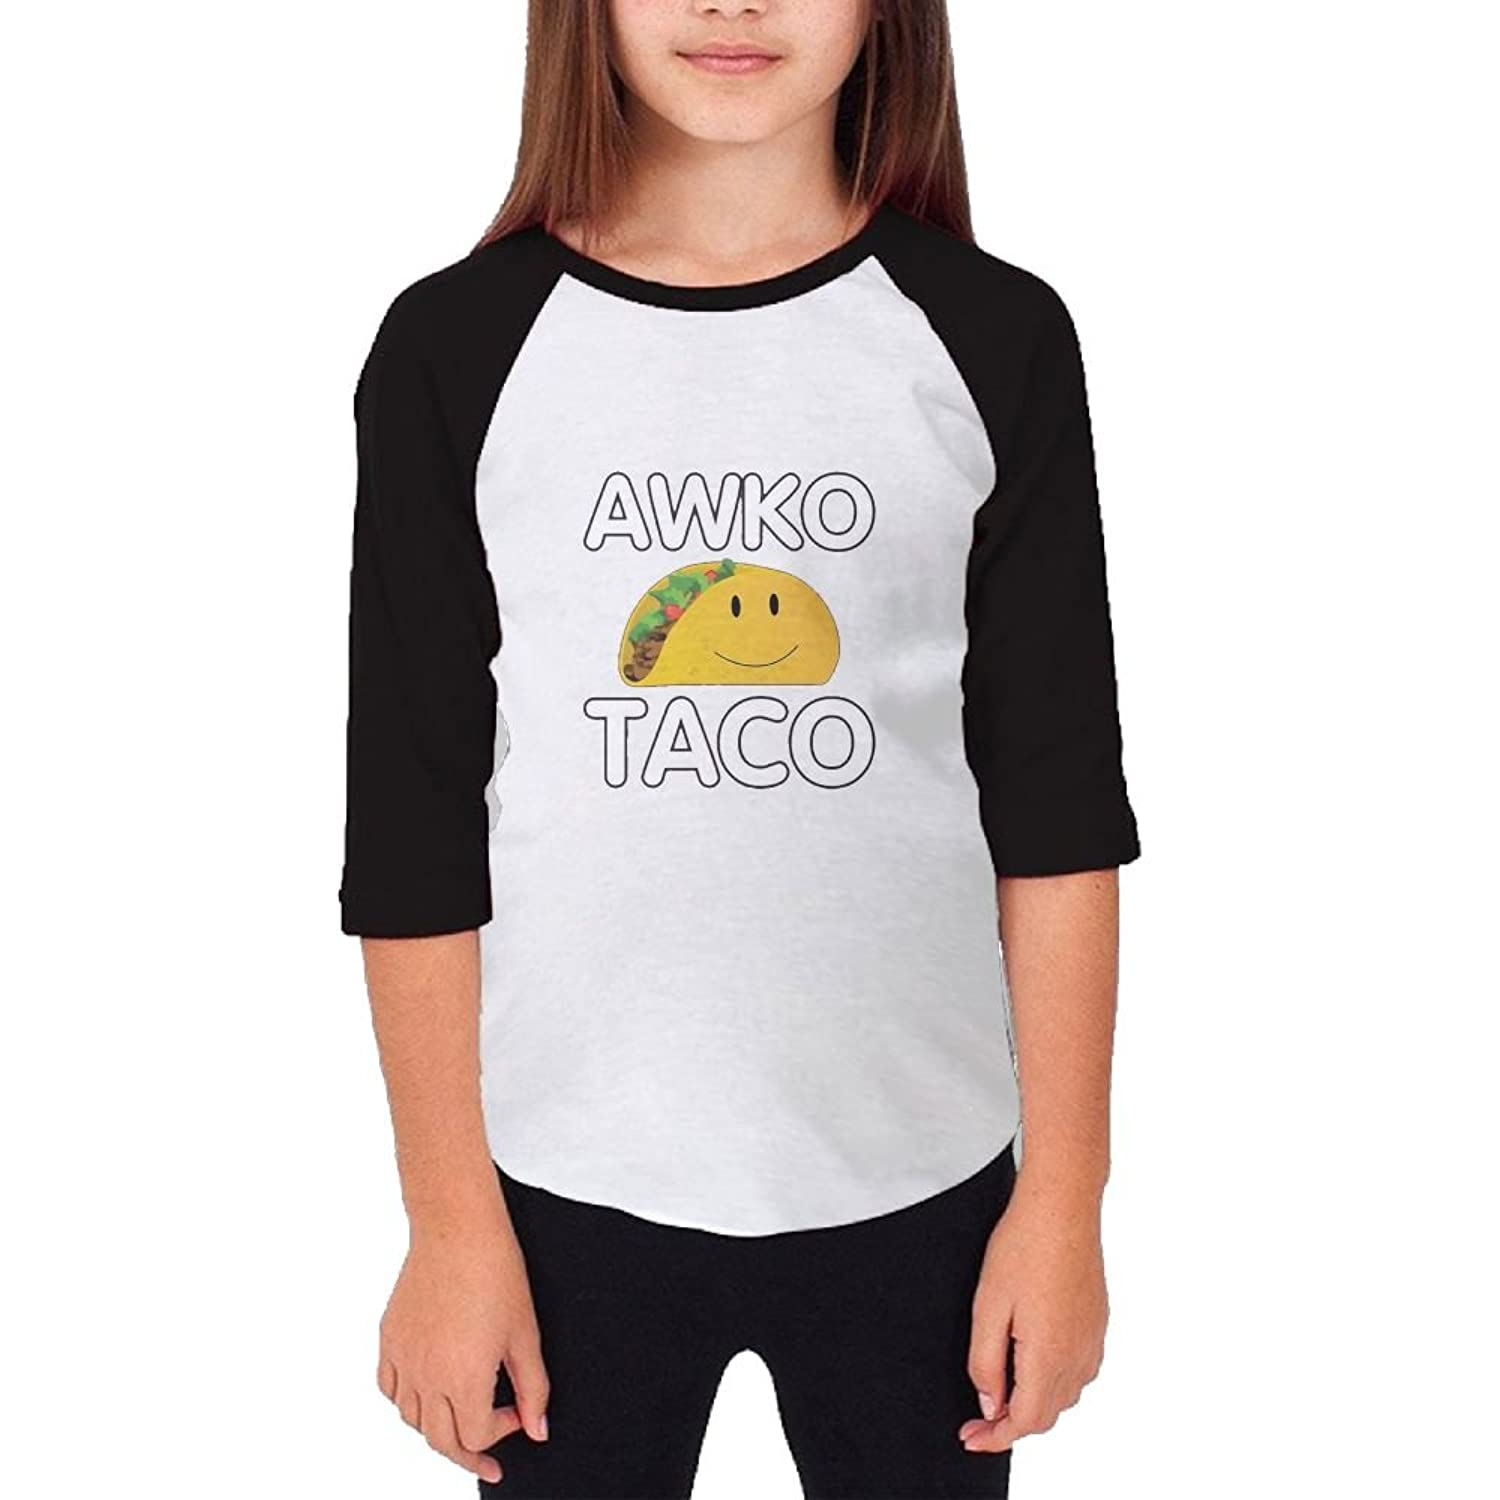 010bce431 Jidfnjg Awko Taco RD Kids 3/4 Sleeves Raglan T Shirts Child Youth Slim Fit